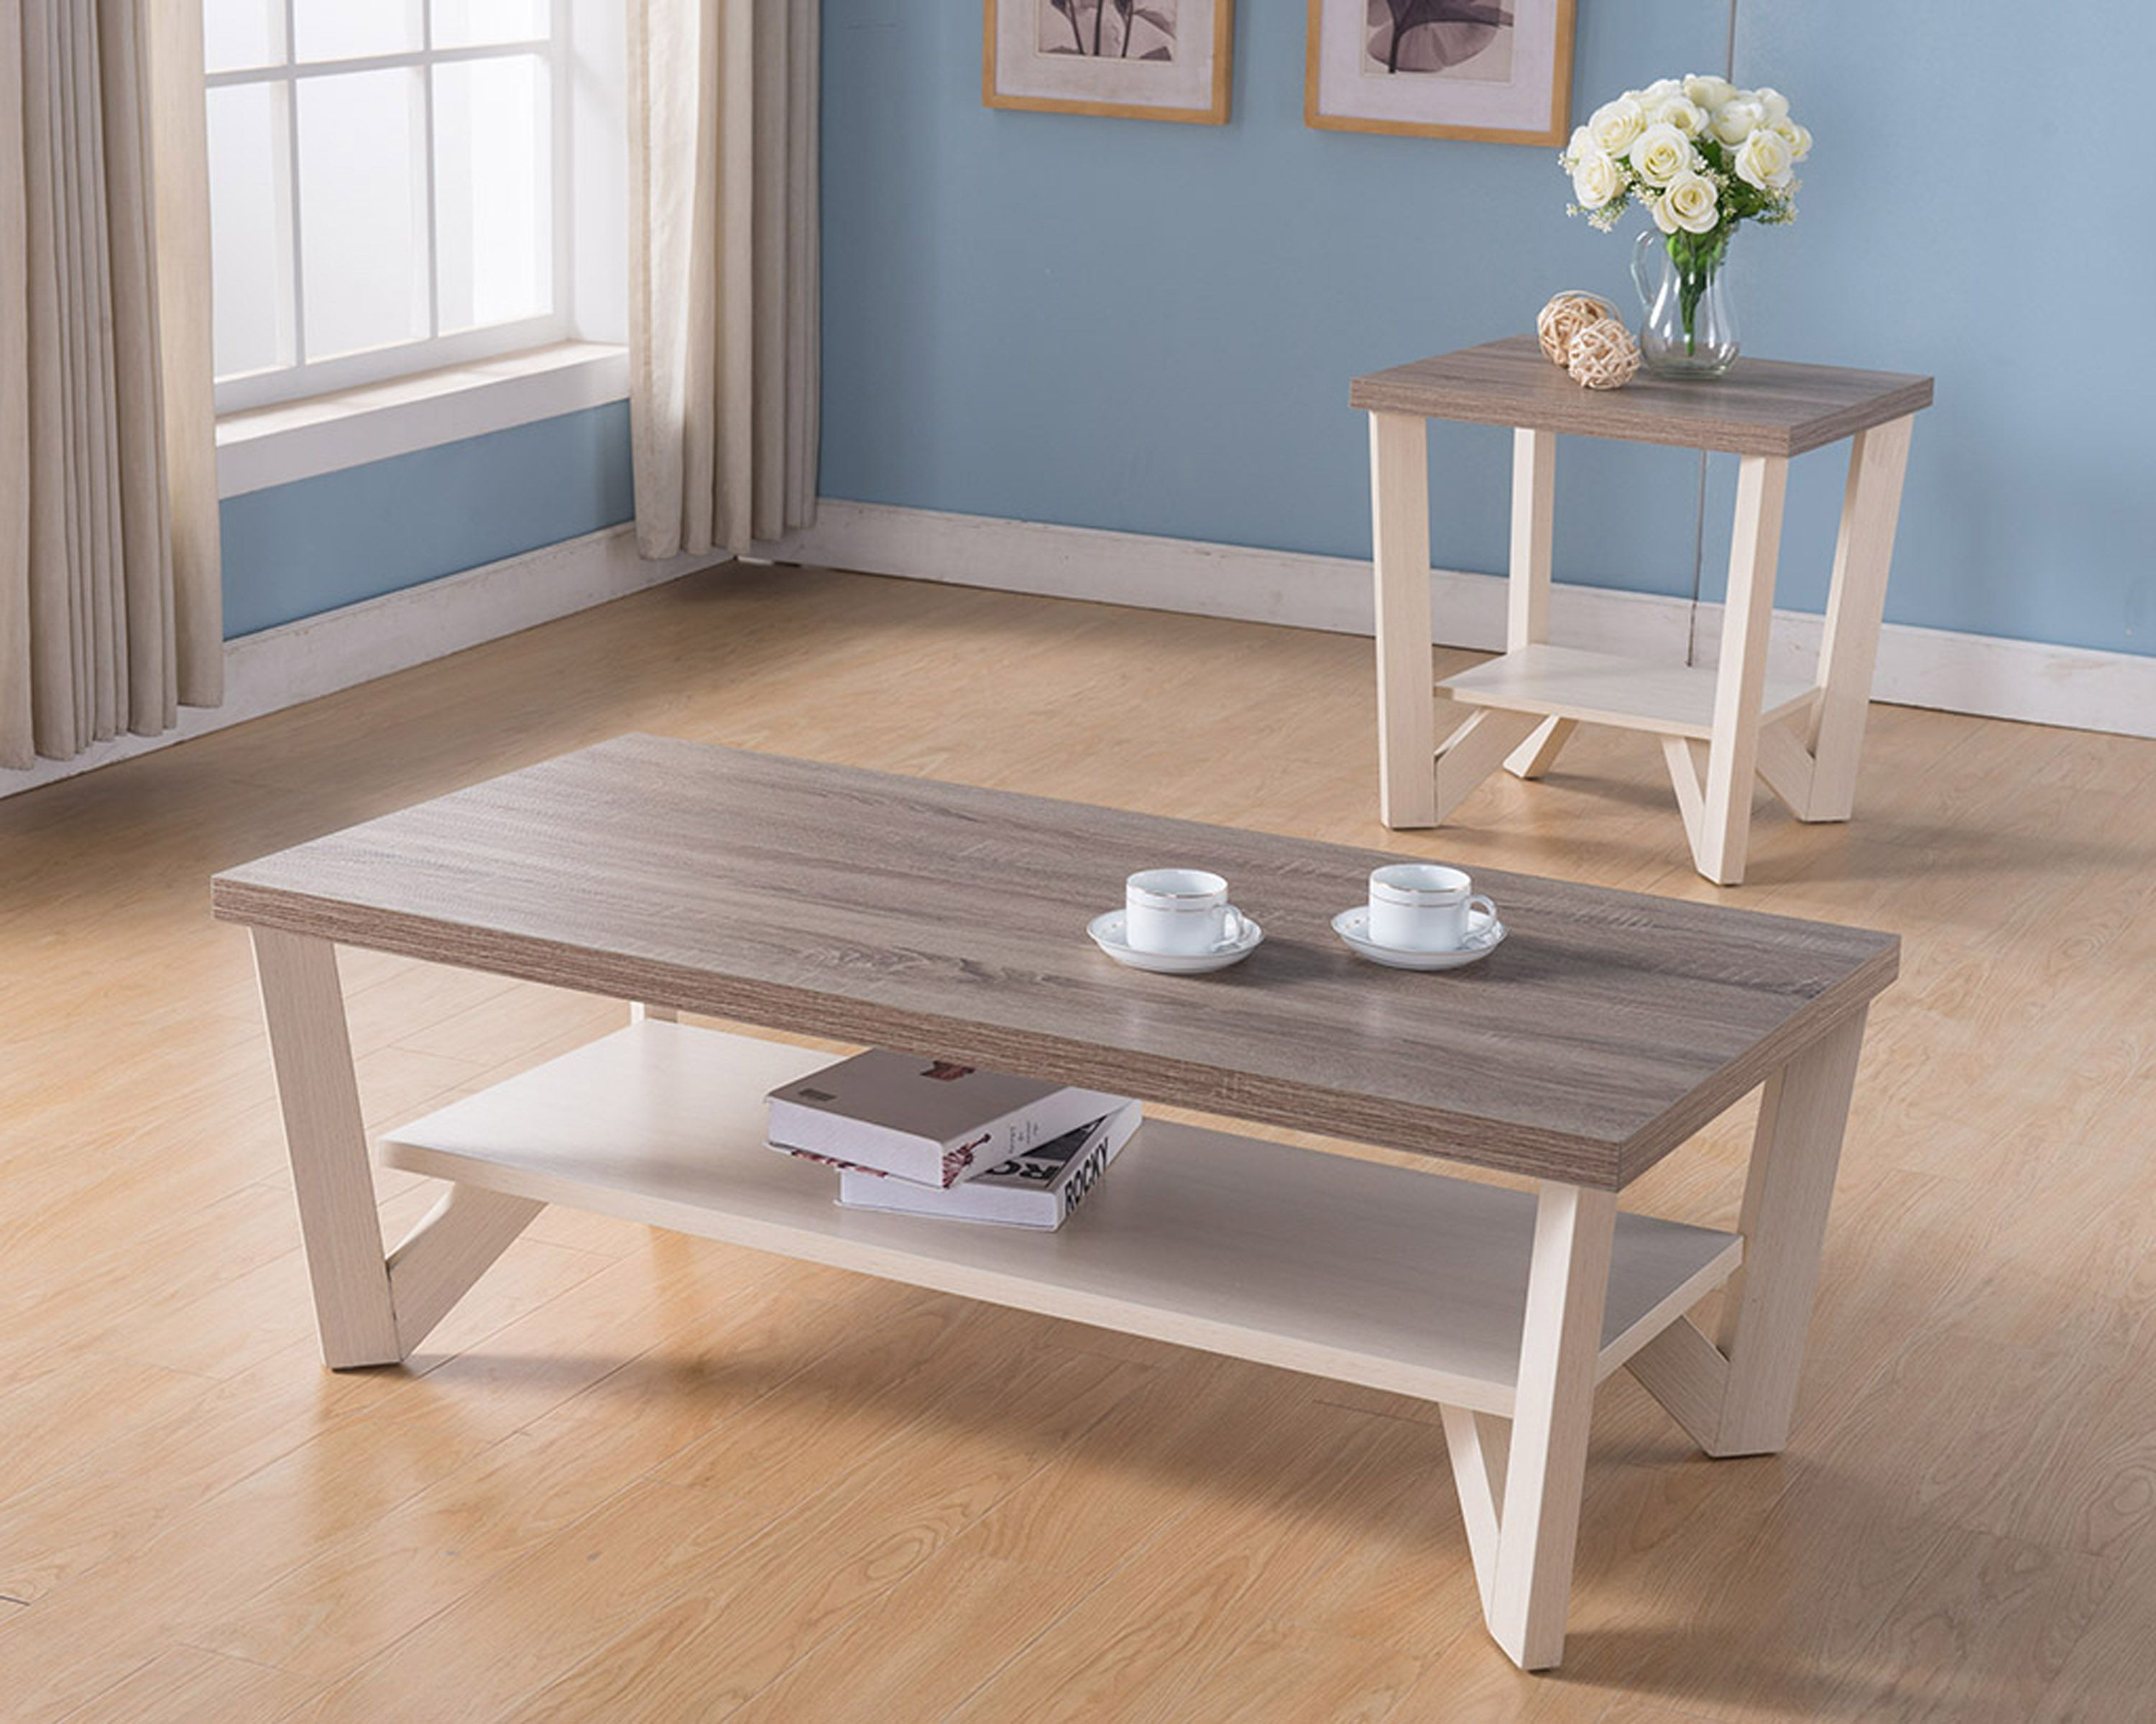 161602ct Et Smart Home Ivory Dark Taupe Coffee Table And End Table Set Features An All Around Two Living Room Table Sets Coffee Table Cheap Living Room Sets